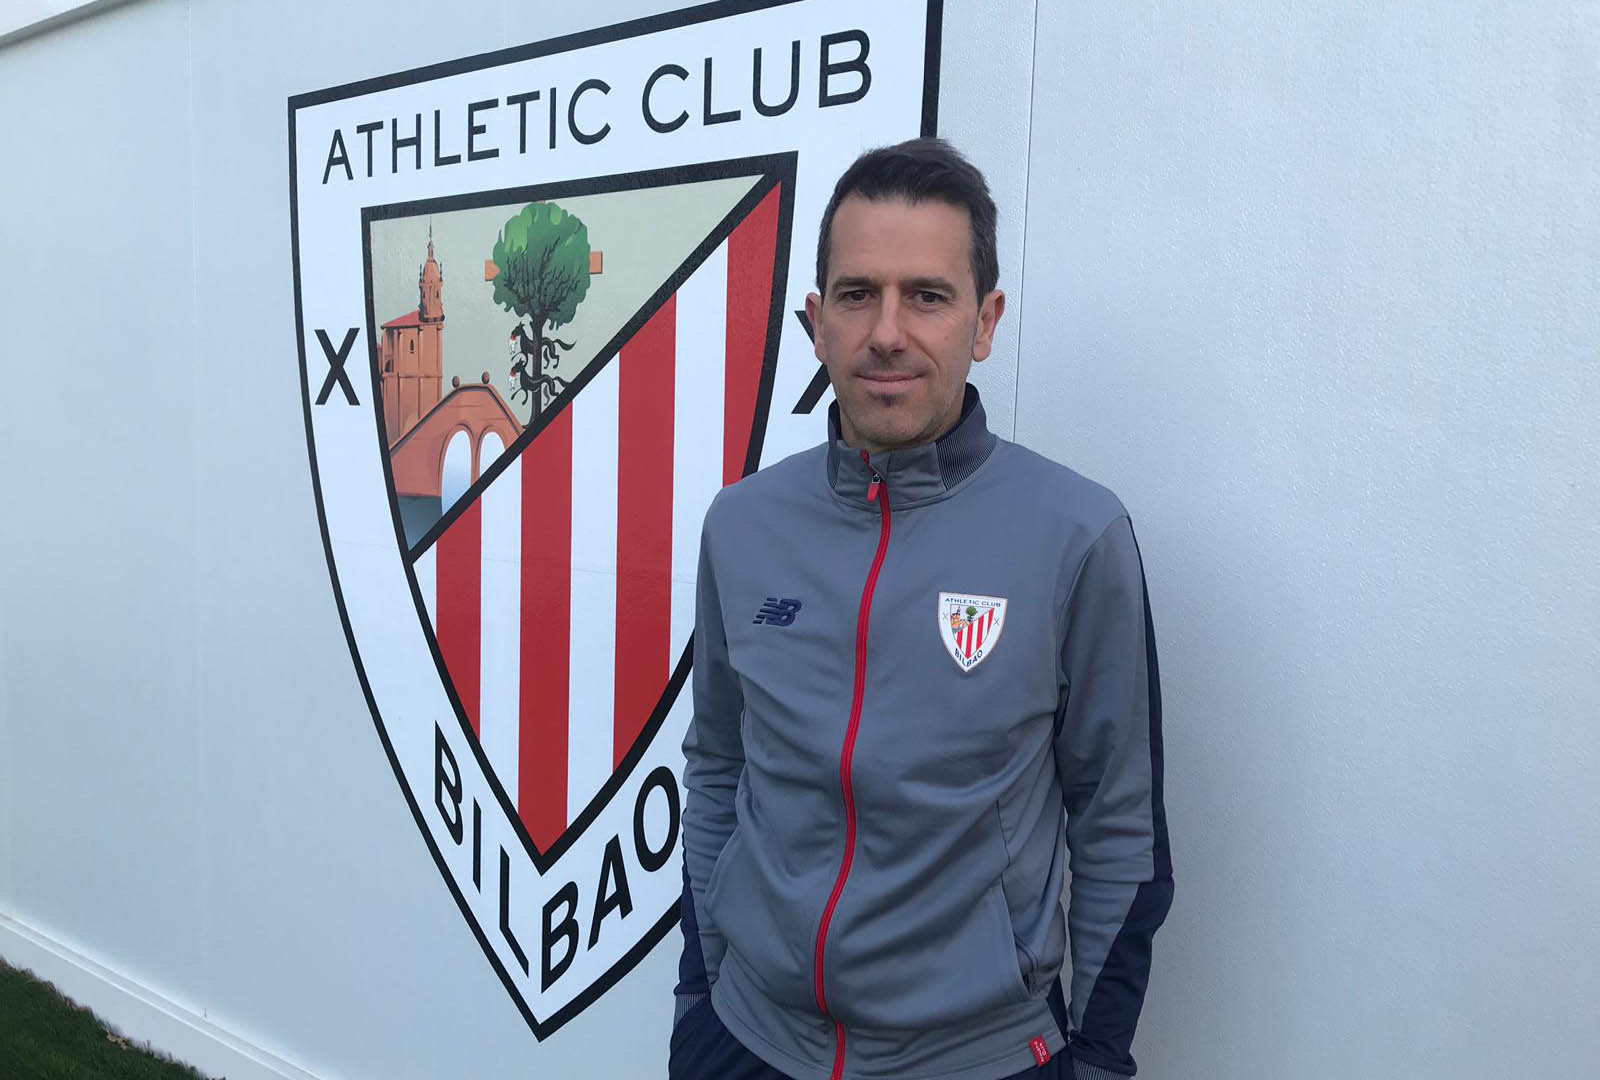 Raúl Loroño takes over from Koldo Asua in Lezama